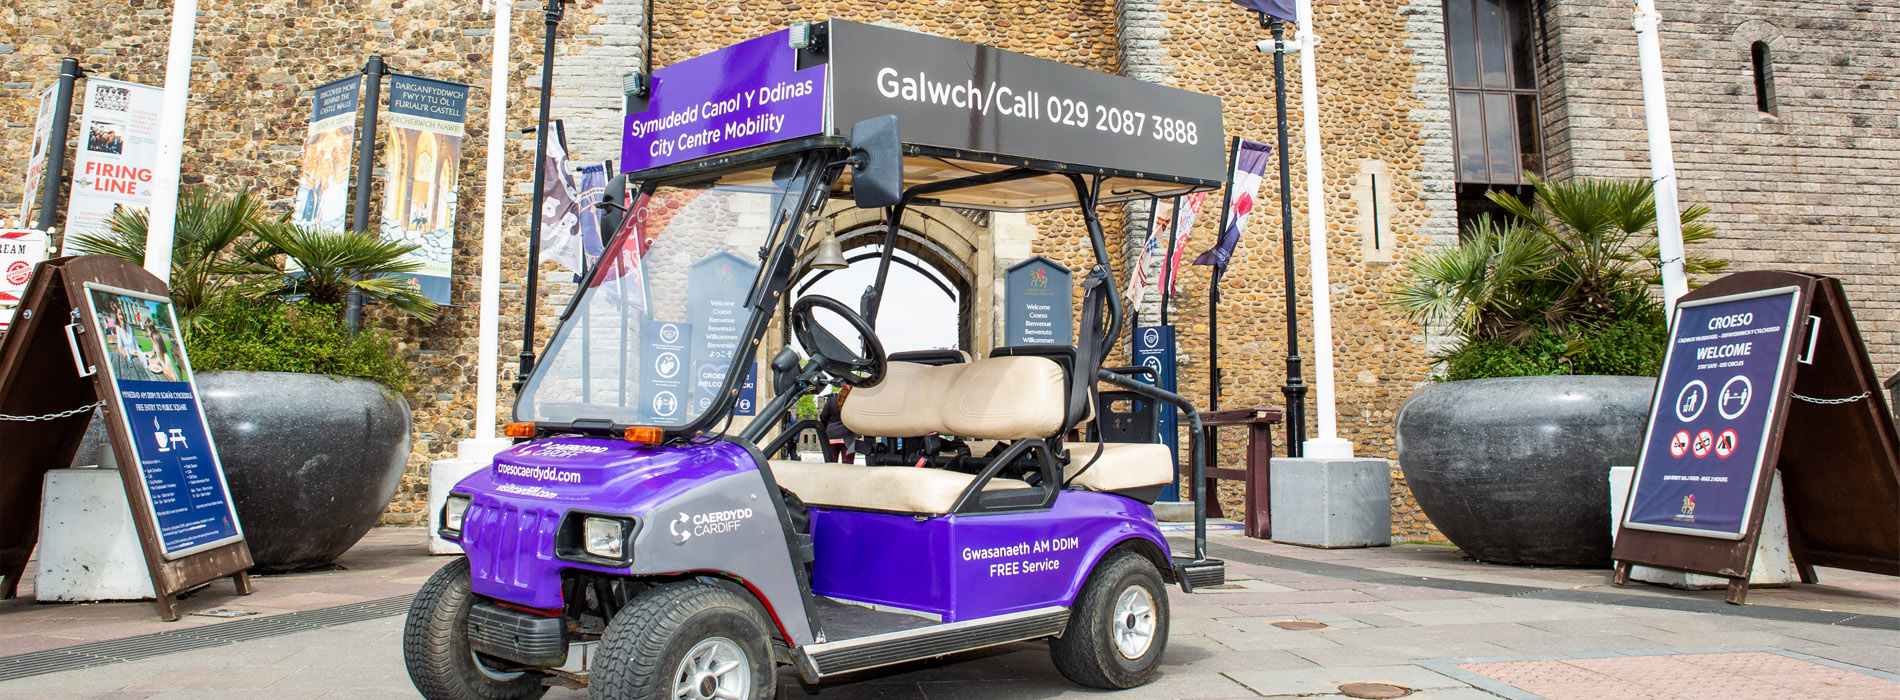 Cardiff Mobility Buggy